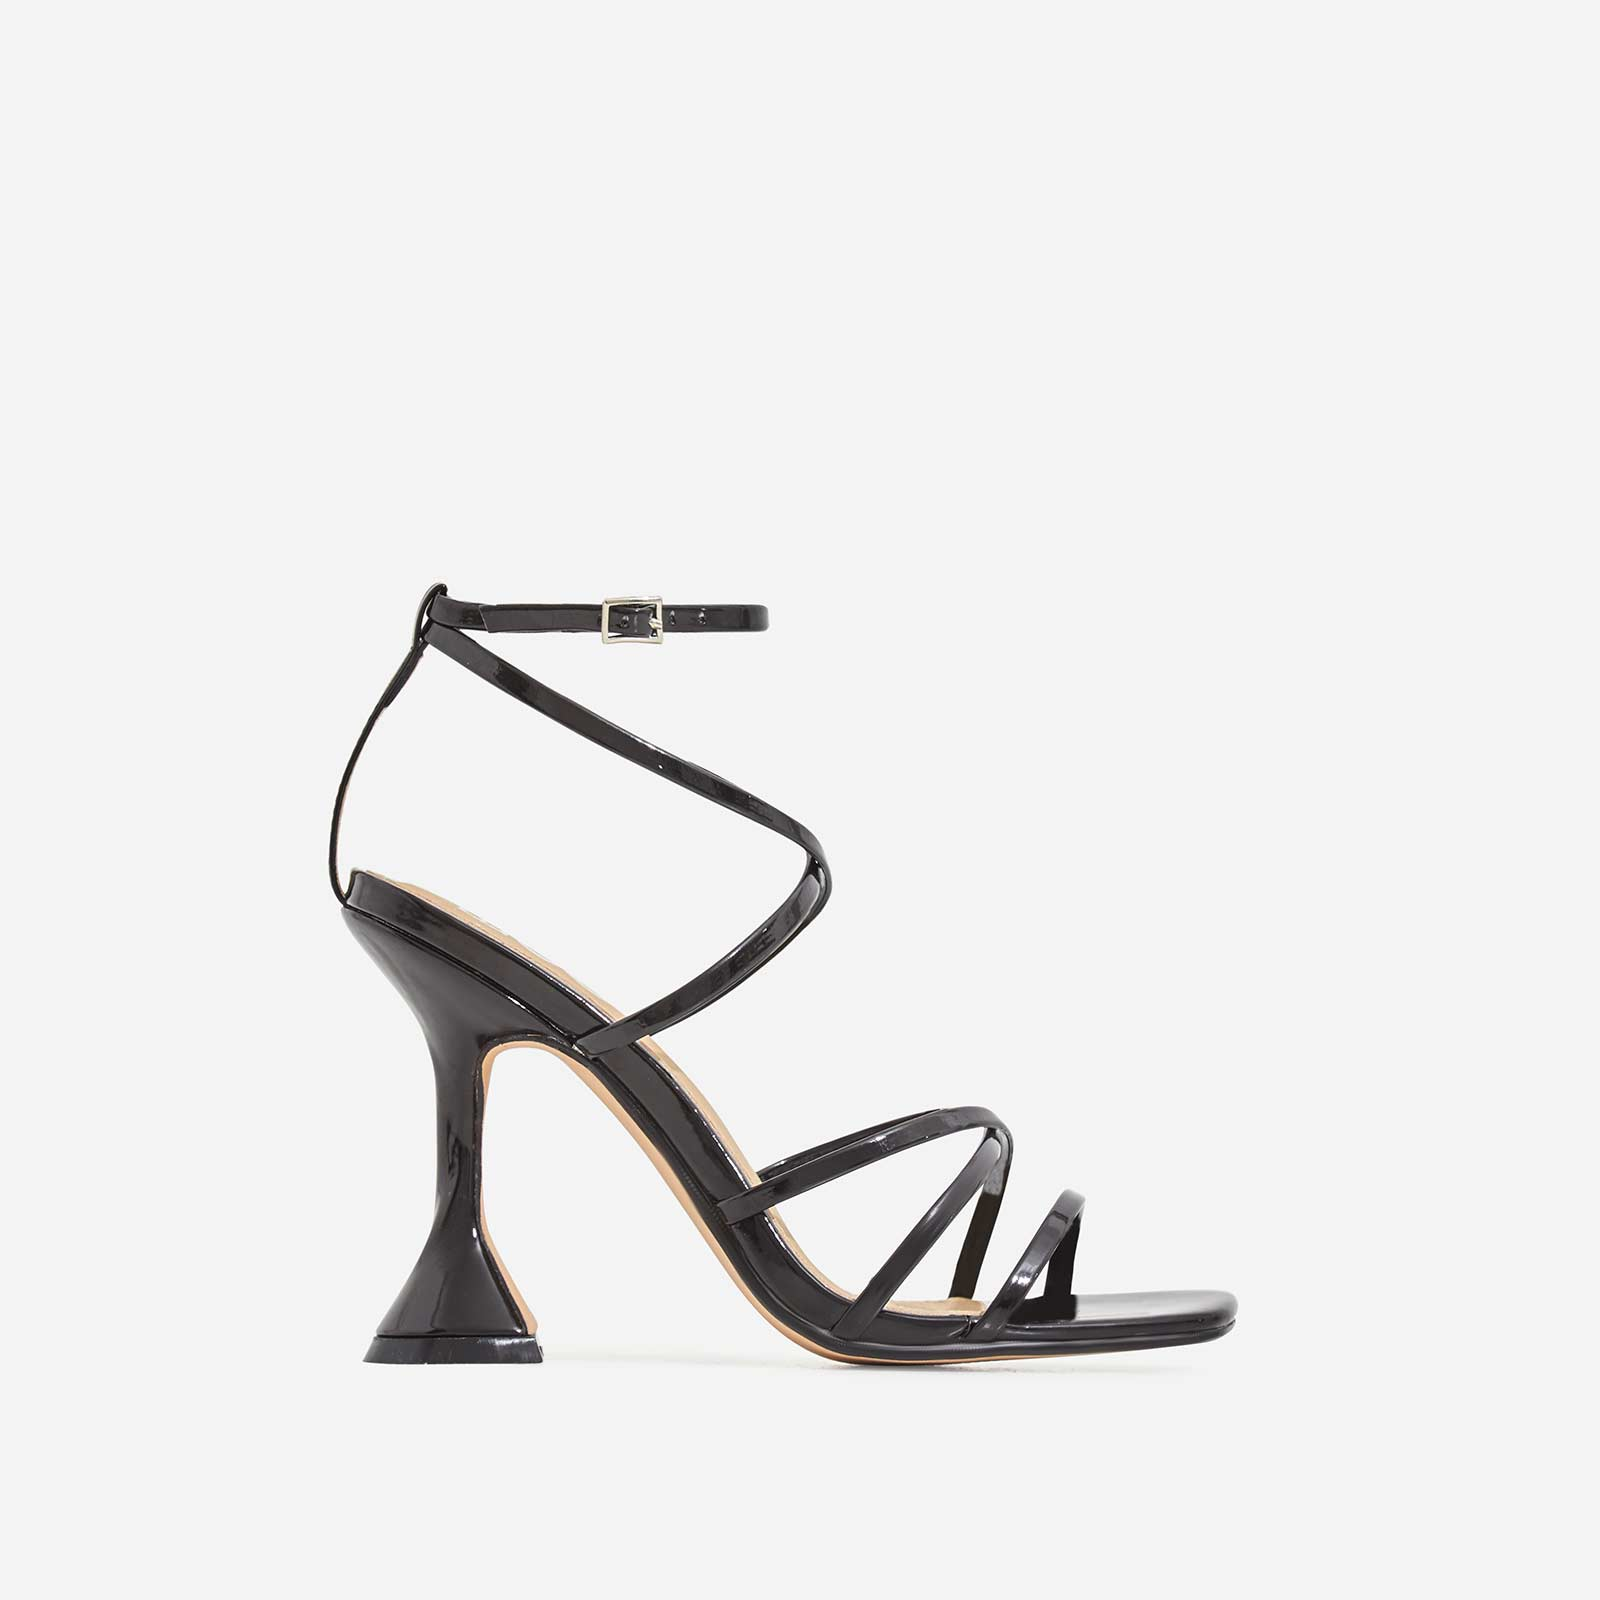 Richie Square Toe Heel In Black Patent